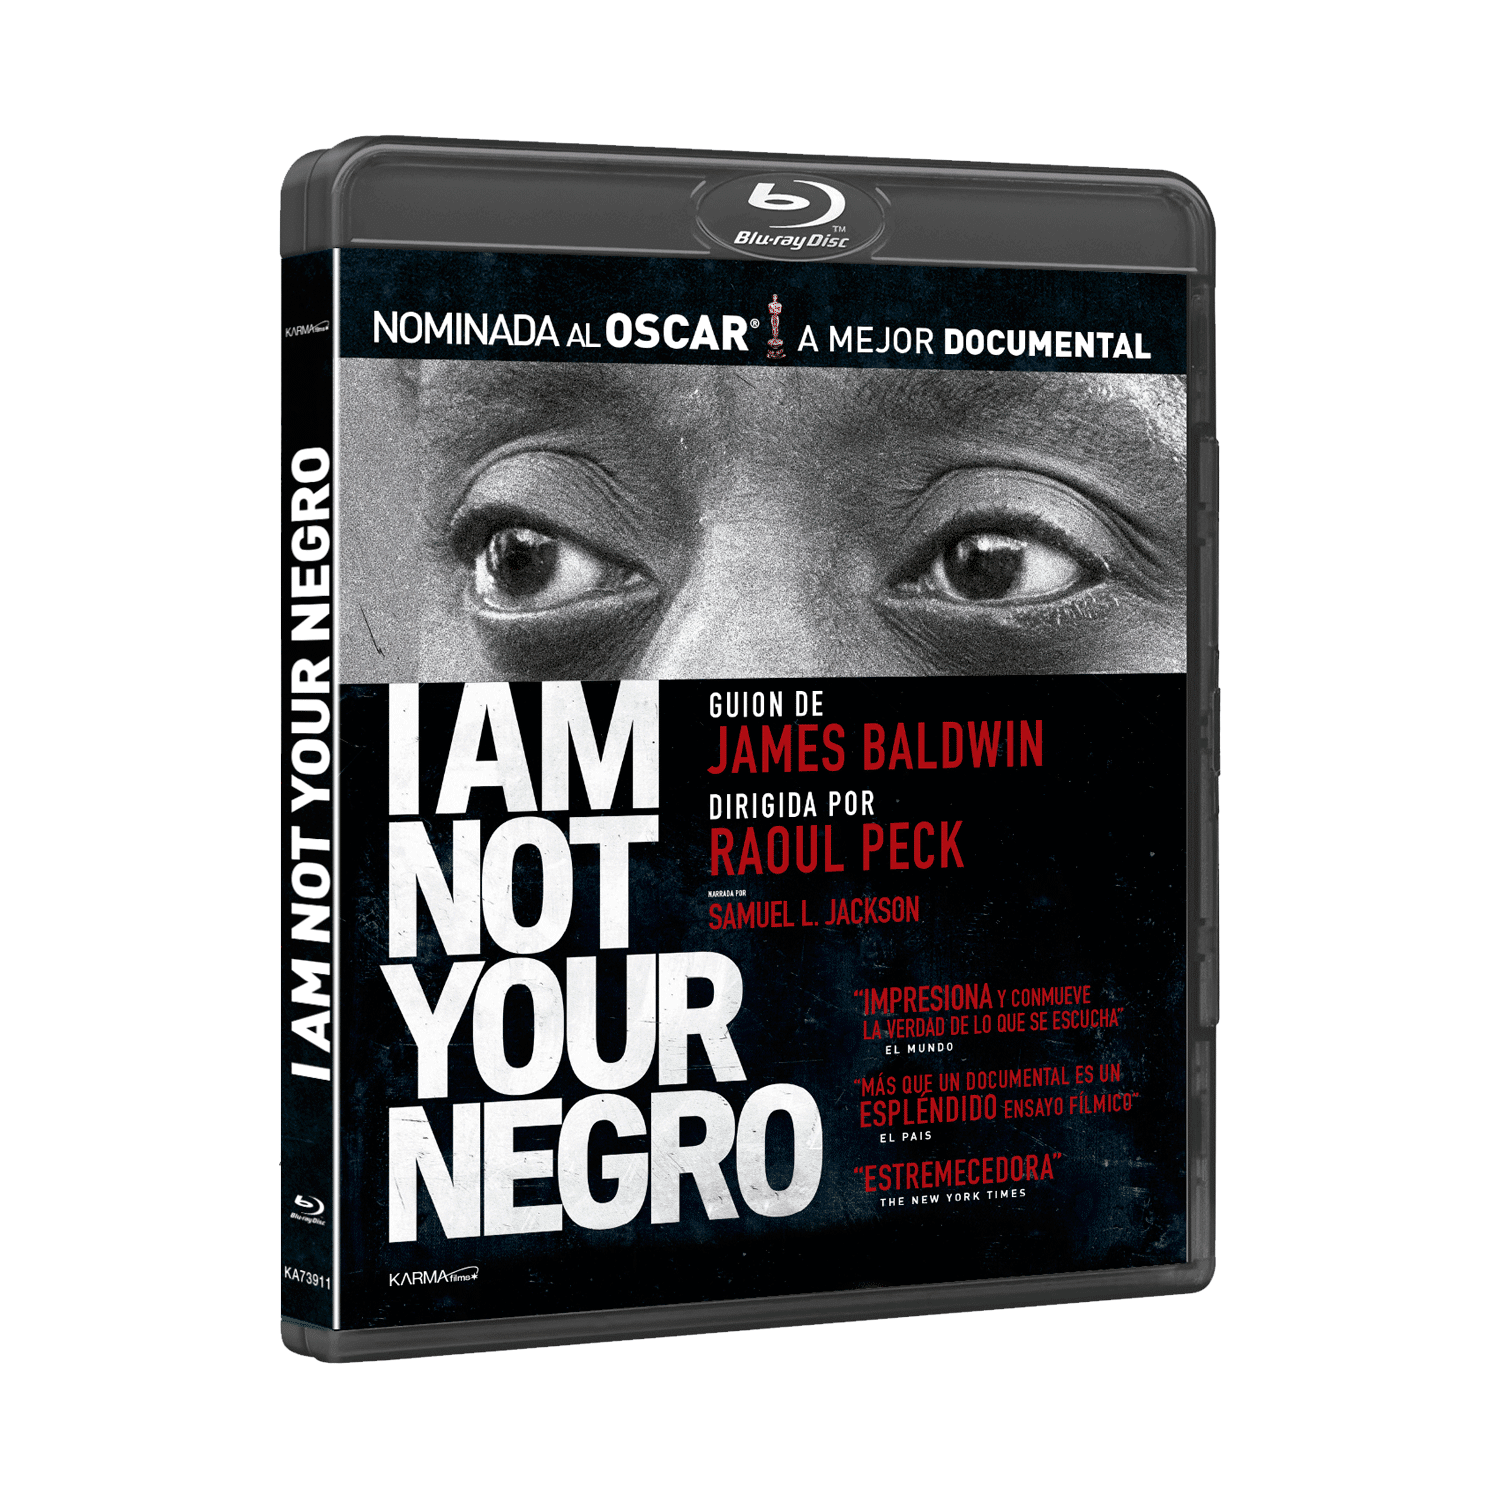 I_AM_YOUR_NEGRO_BD